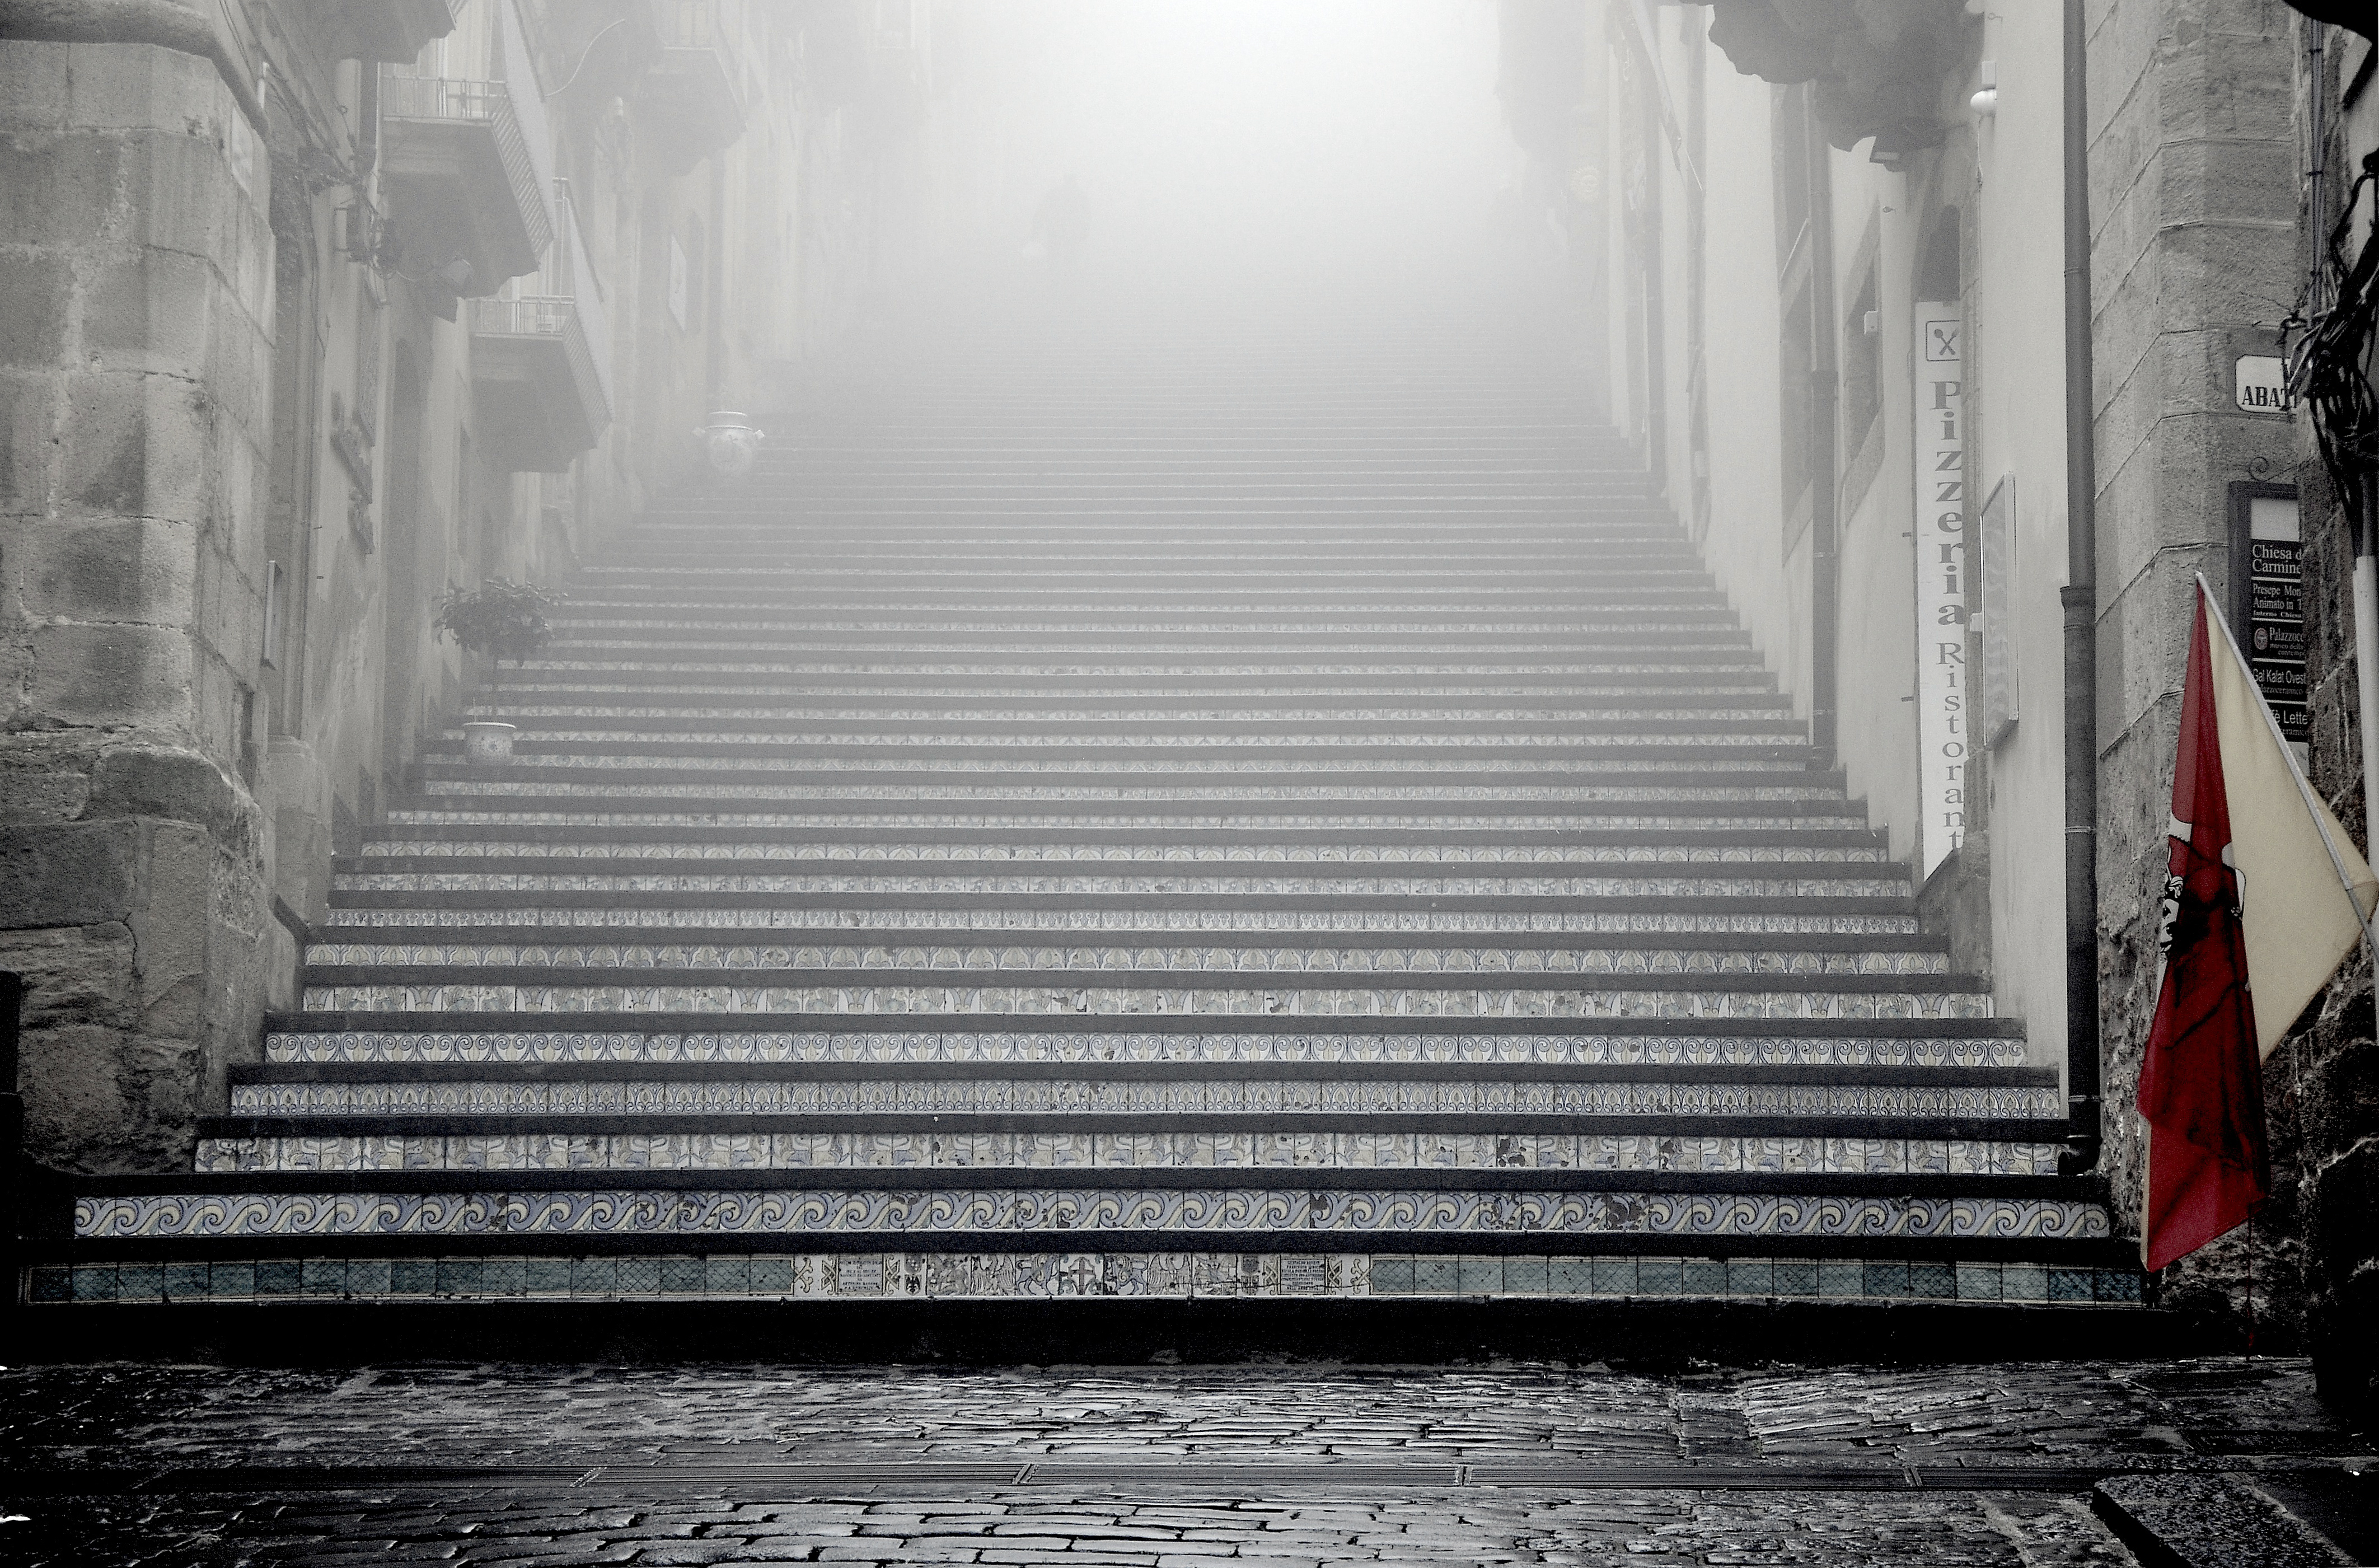 Stairs In The Mist Free Stock Photos Life Of Pix HD Wallpapers Download Free Images Wallpaper [1000image.com]